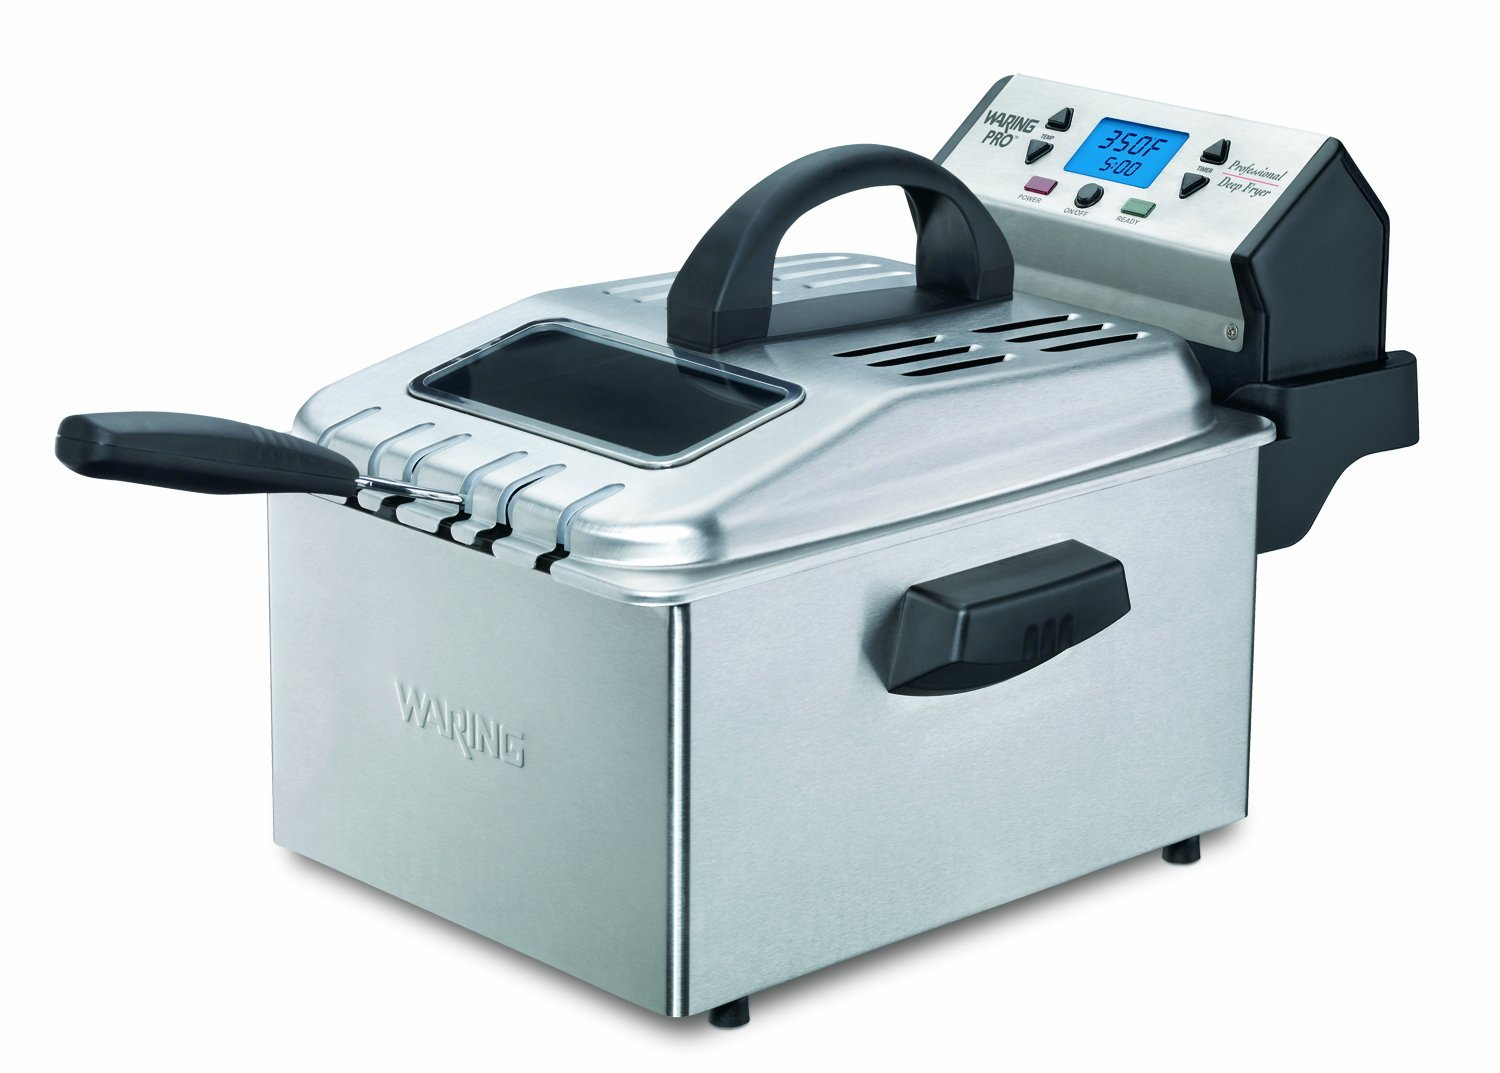 Waring Professional Deep Fryer – 1 Gallon Immersion Fryer with 3 Baskets and Digital Controls